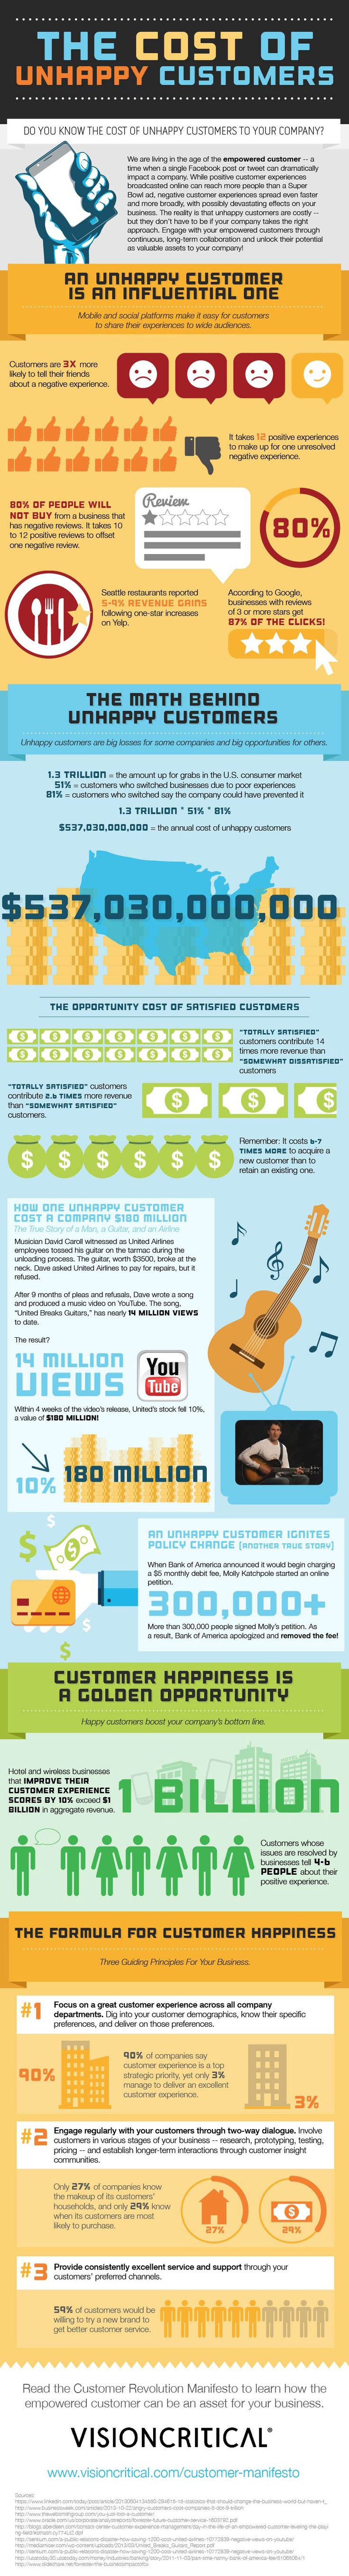 Why Businesses Can't Afford to Upset Customers #Infographic